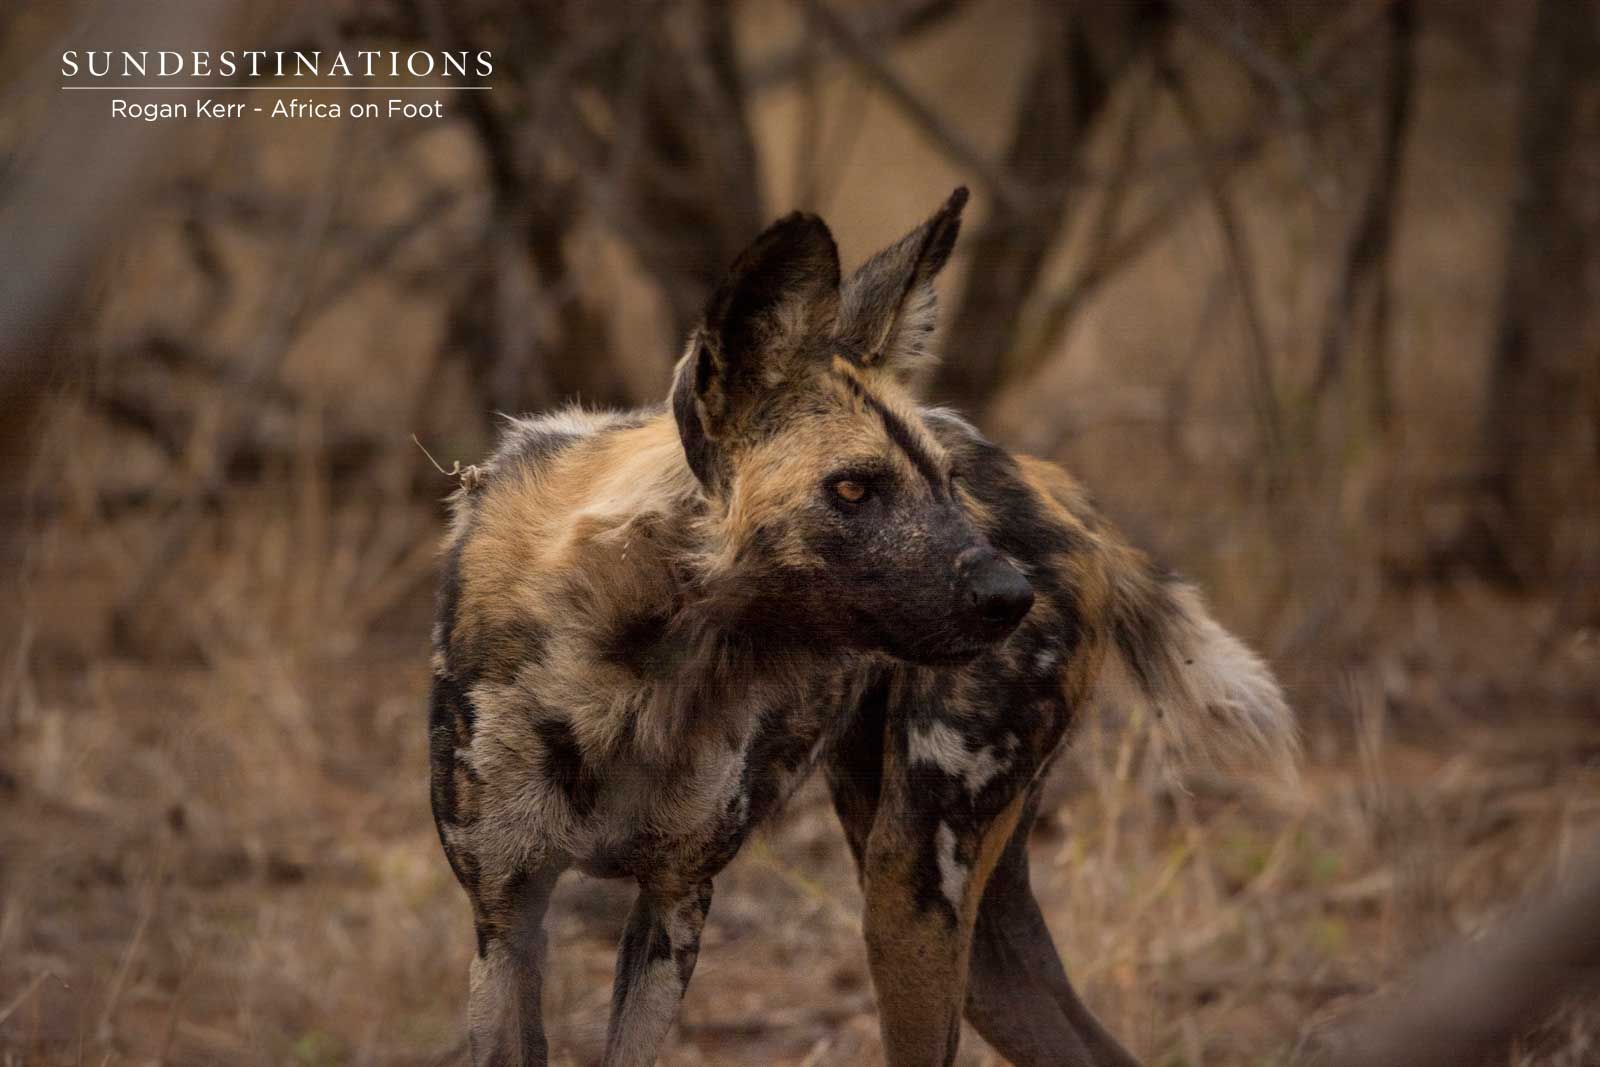 Wild Dogs at Africa on Foot